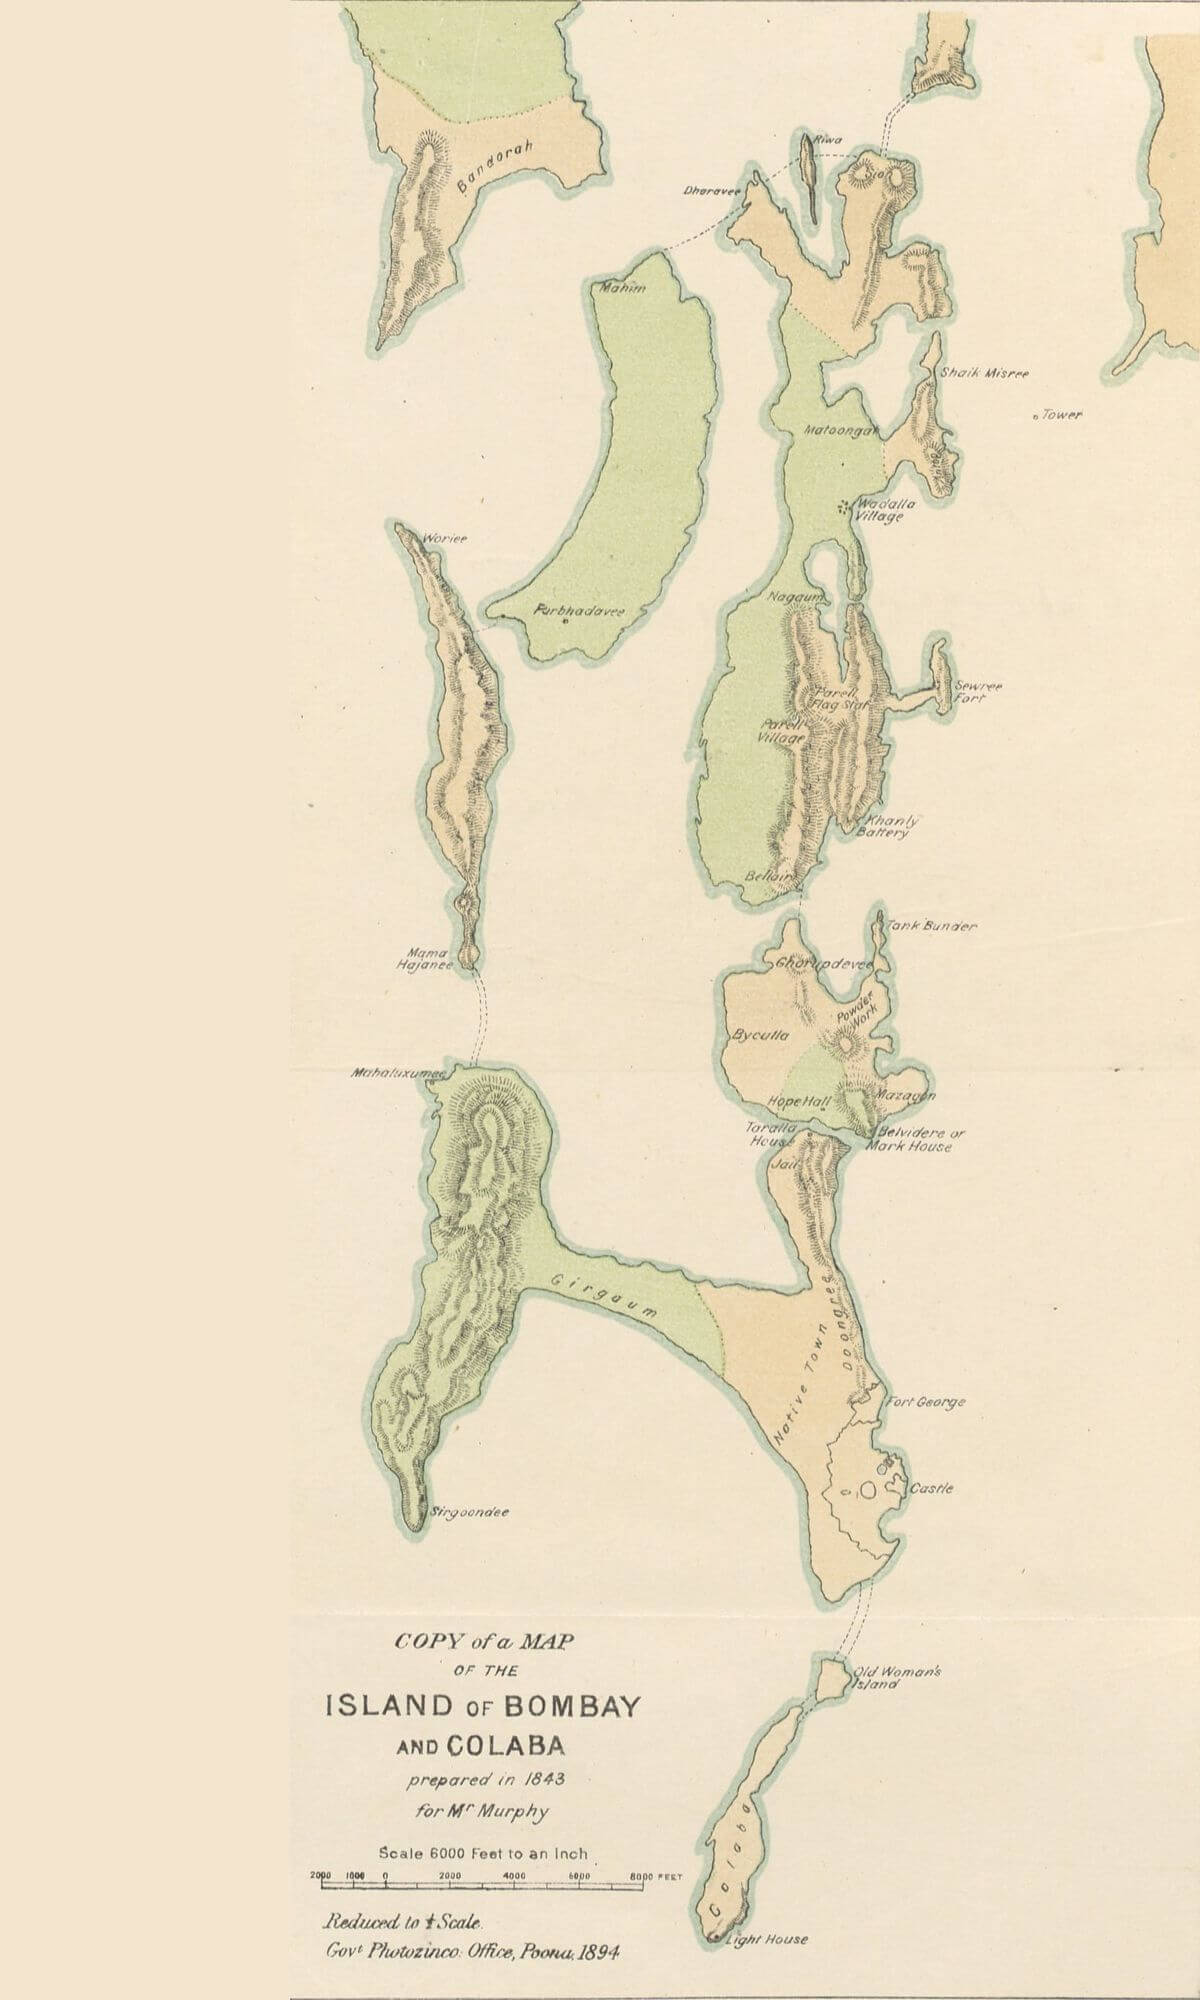 Bombay and Colaba, 1843